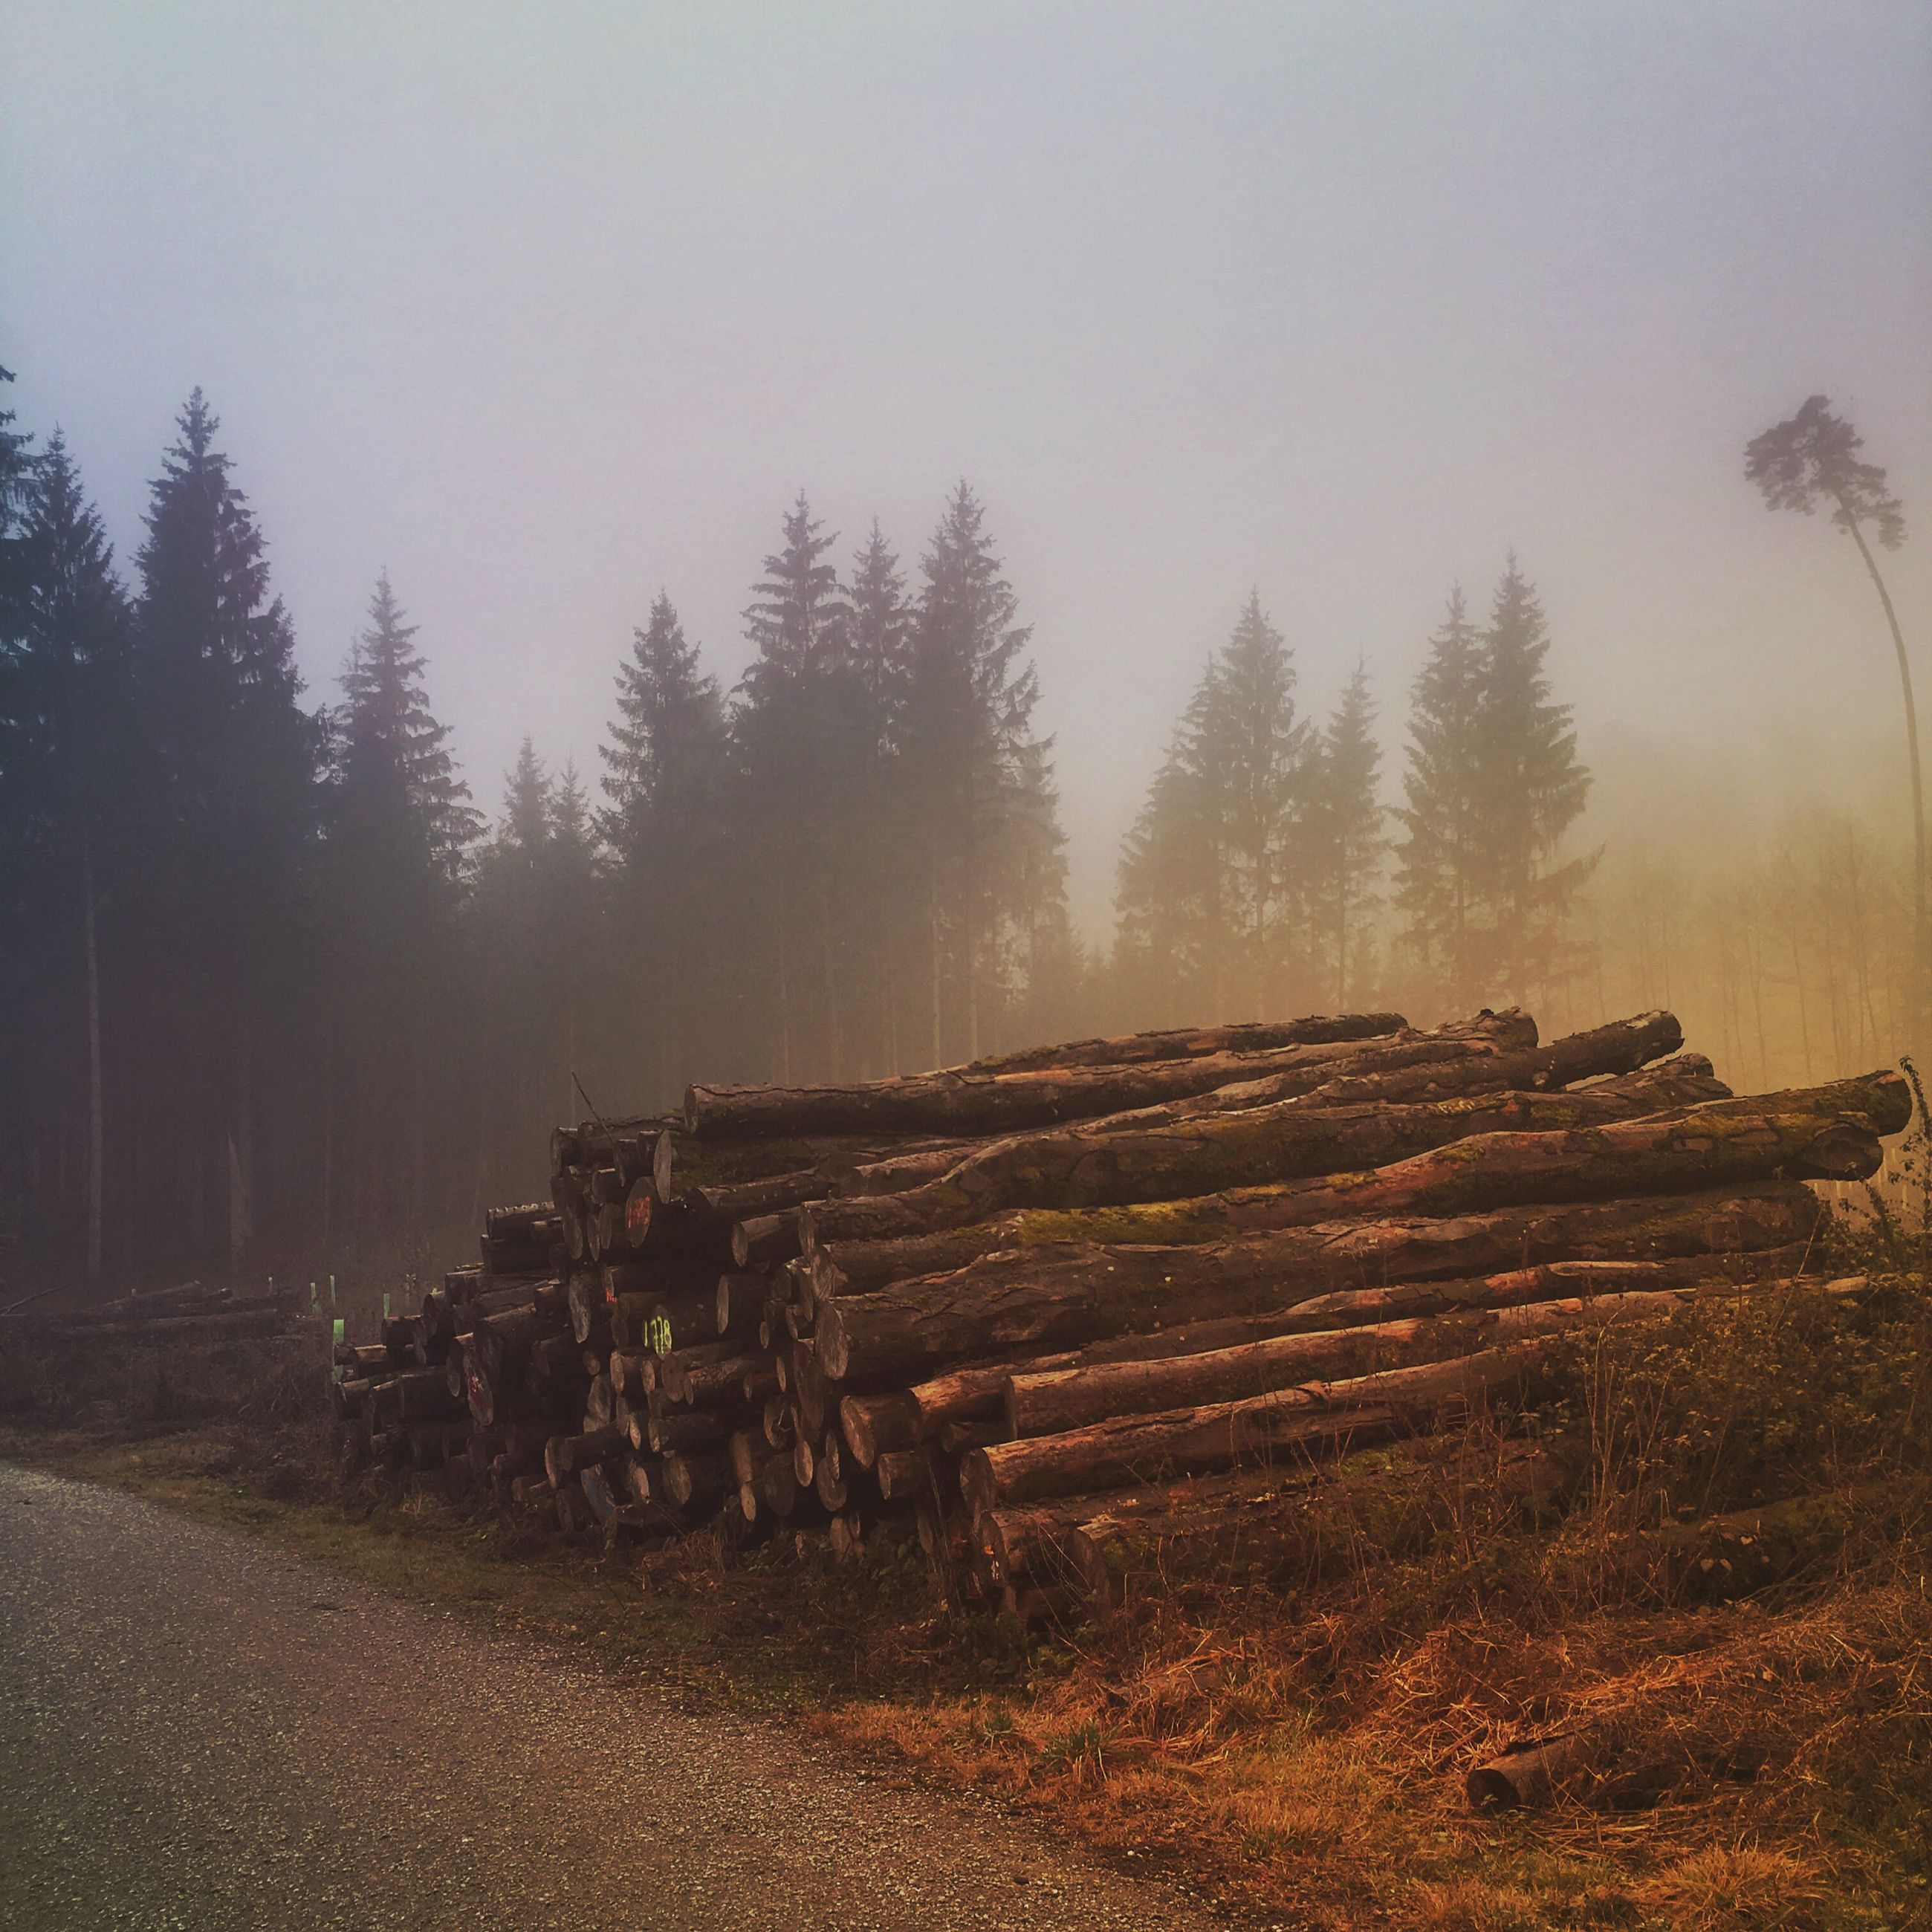 tree, landscape, field, tranquility, clear sky, tranquil scene, sky, nature, wood - material, rural scene, abandoned, outdoors, day, no people, non-urban scene, old, log, firewood, in a row, scenics